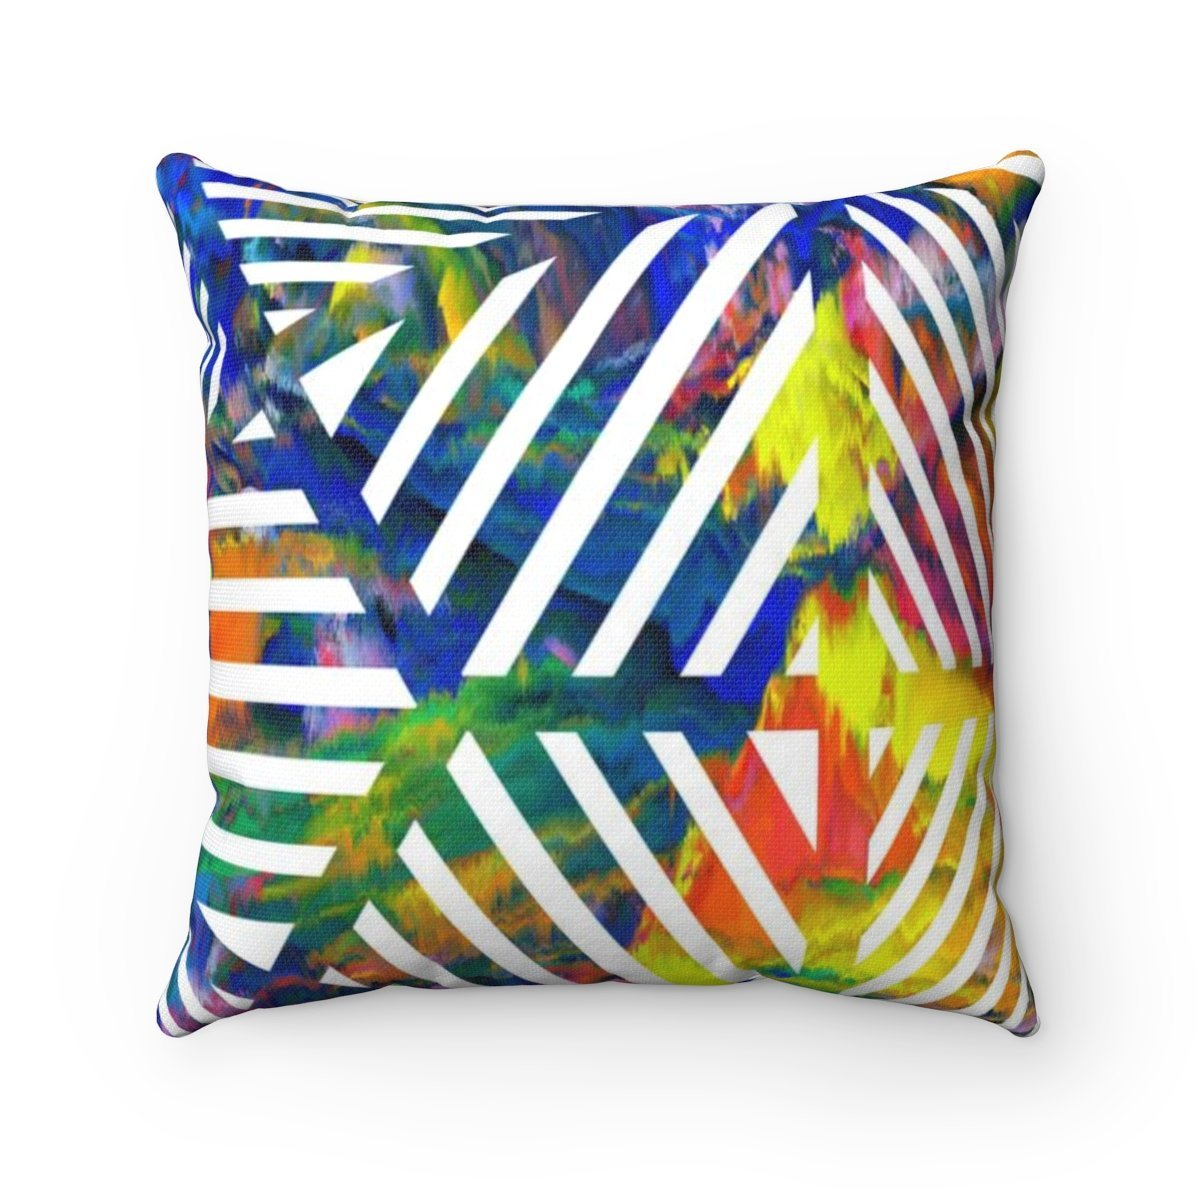 Rainbow geometric decorative cushion cover-Home Decor - Decorative Accents - Pillows & Throws - Decorative Pillows-Maison d'Elite-14x14-Très Elite